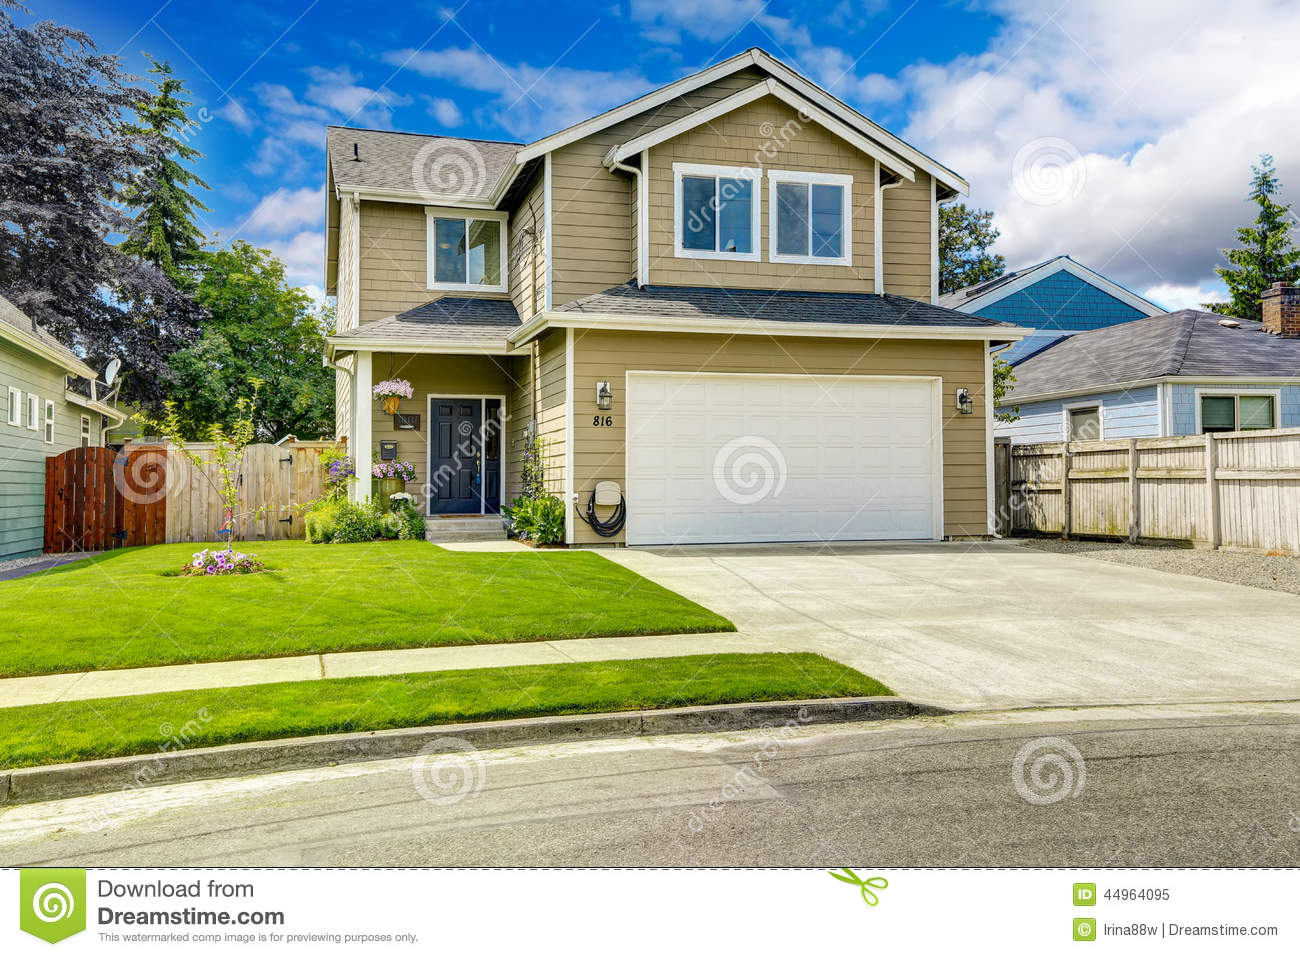 Two story house exterior with front yard landscape stock - Casas con jardines bonitos ...